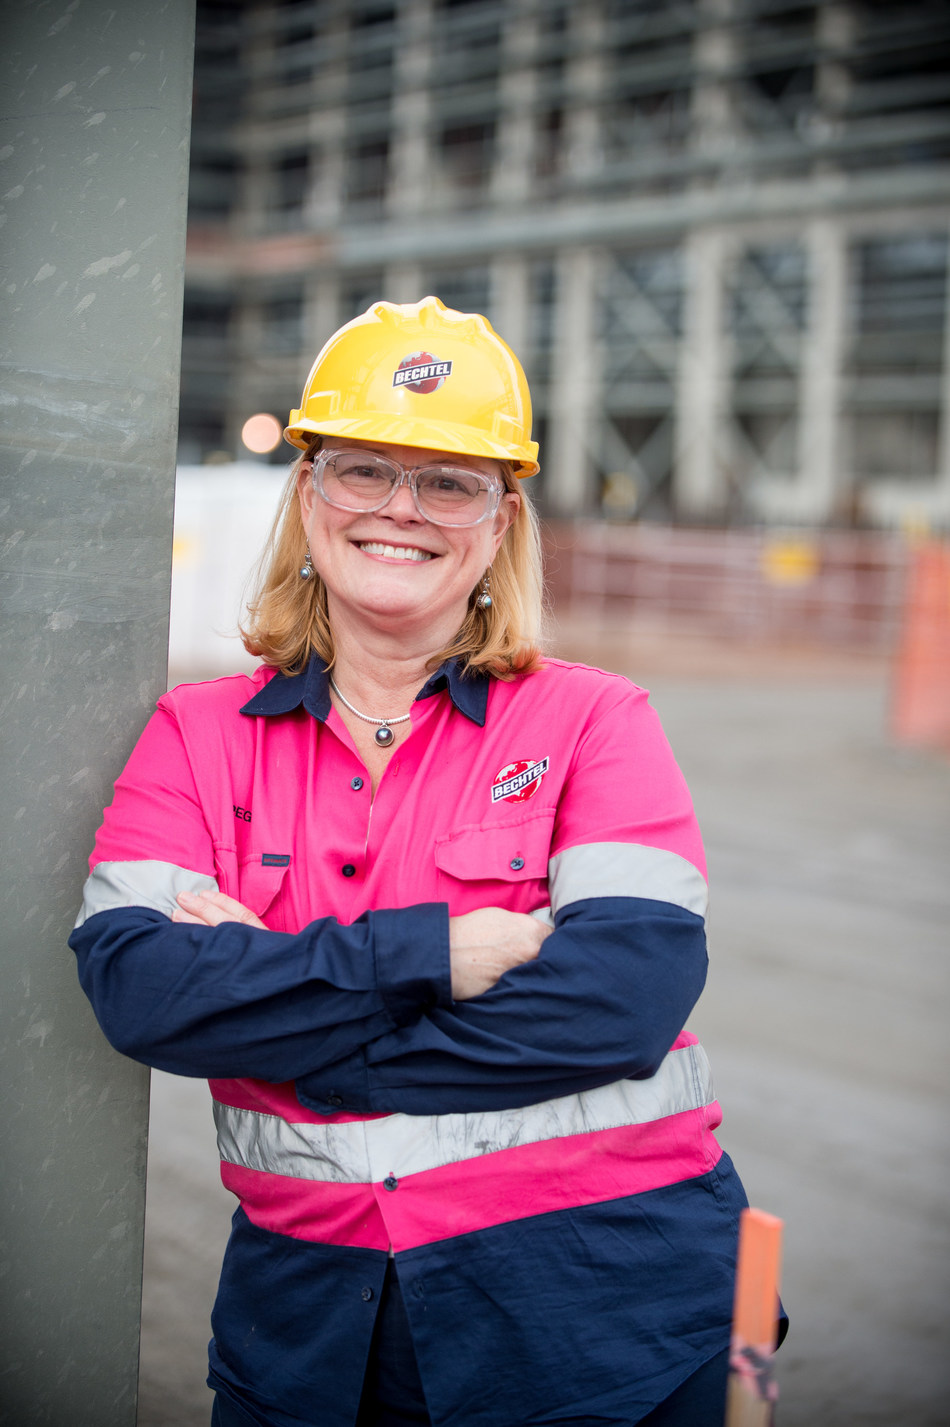 Bechtel Senior Vice President Peggy McCullough, pictured at the construction site of the Hanford Waste Treatment and Immobilization Plant in Washington state.